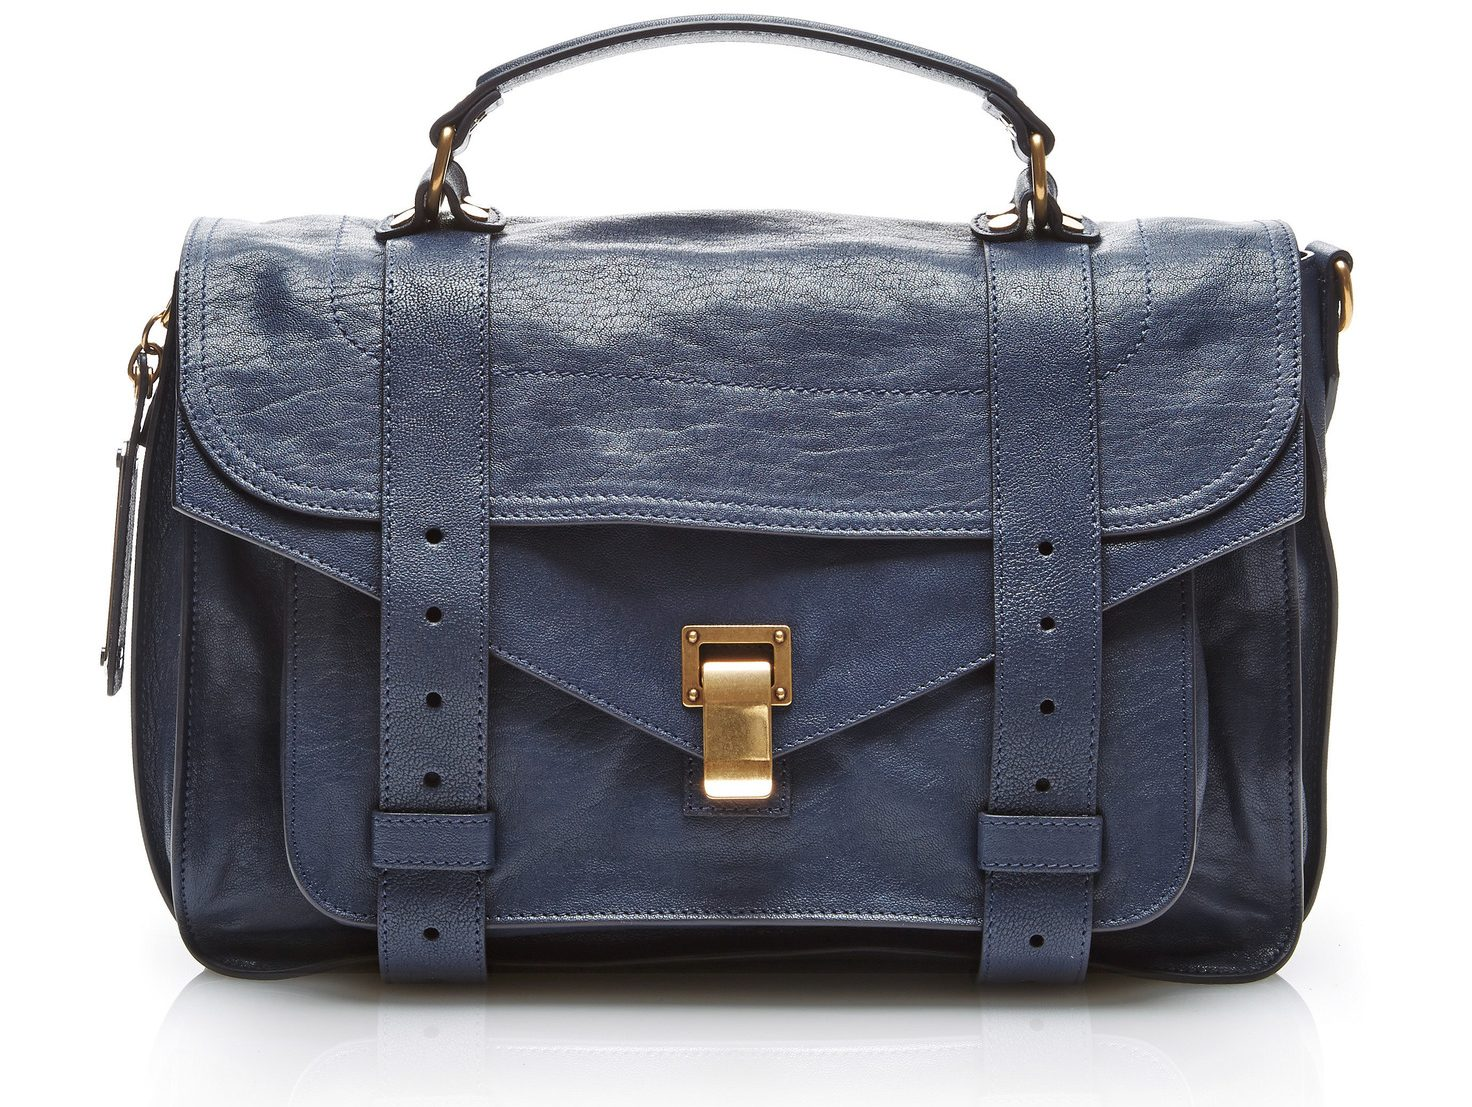 Proenza Schouler PS1 Medium Leather Satchel bag color midnight blue